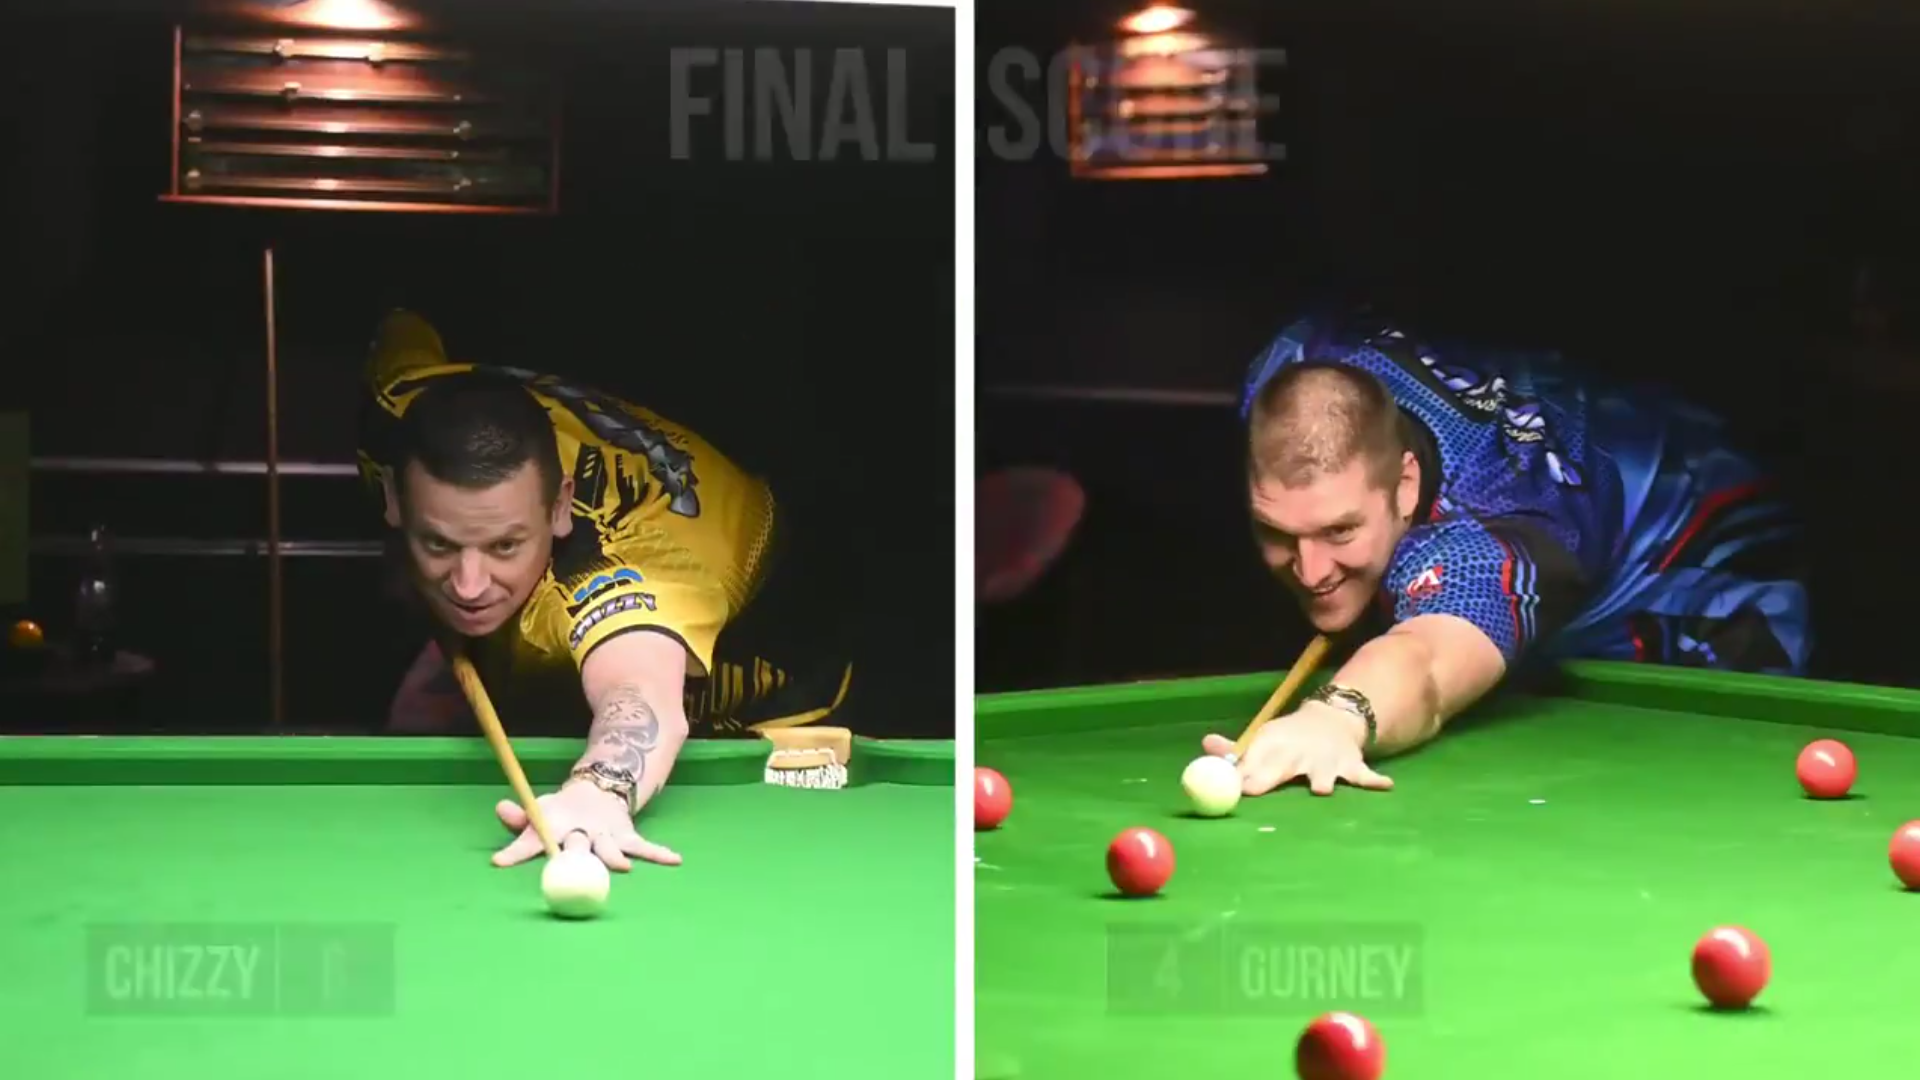 Next Gurney & Chisnall Battle: Pot As Many Balls As You Can In 1 Minute